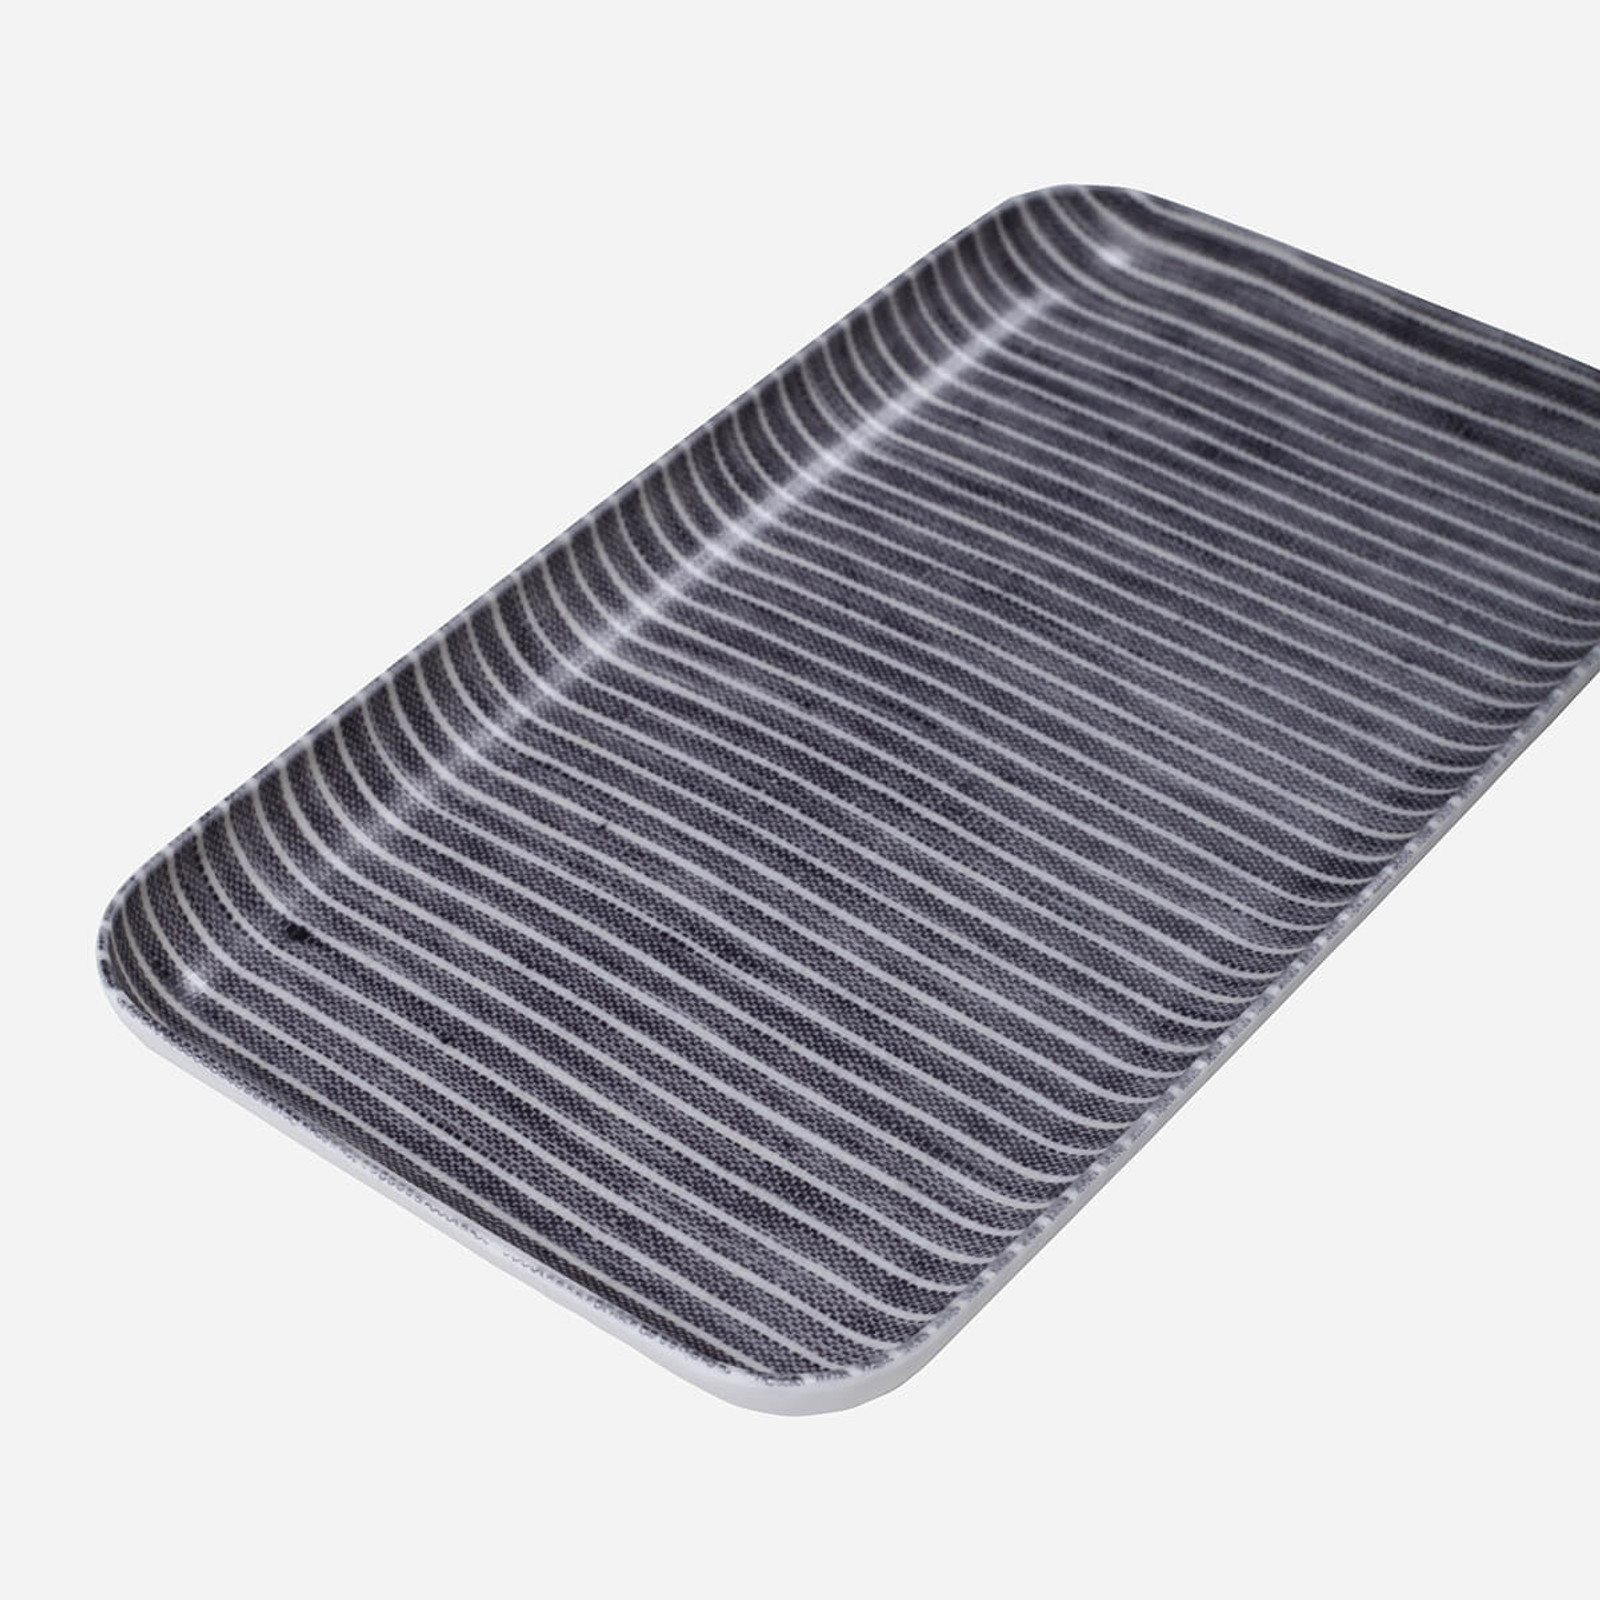 Linen Coating Tray, Small Grey White Stripe